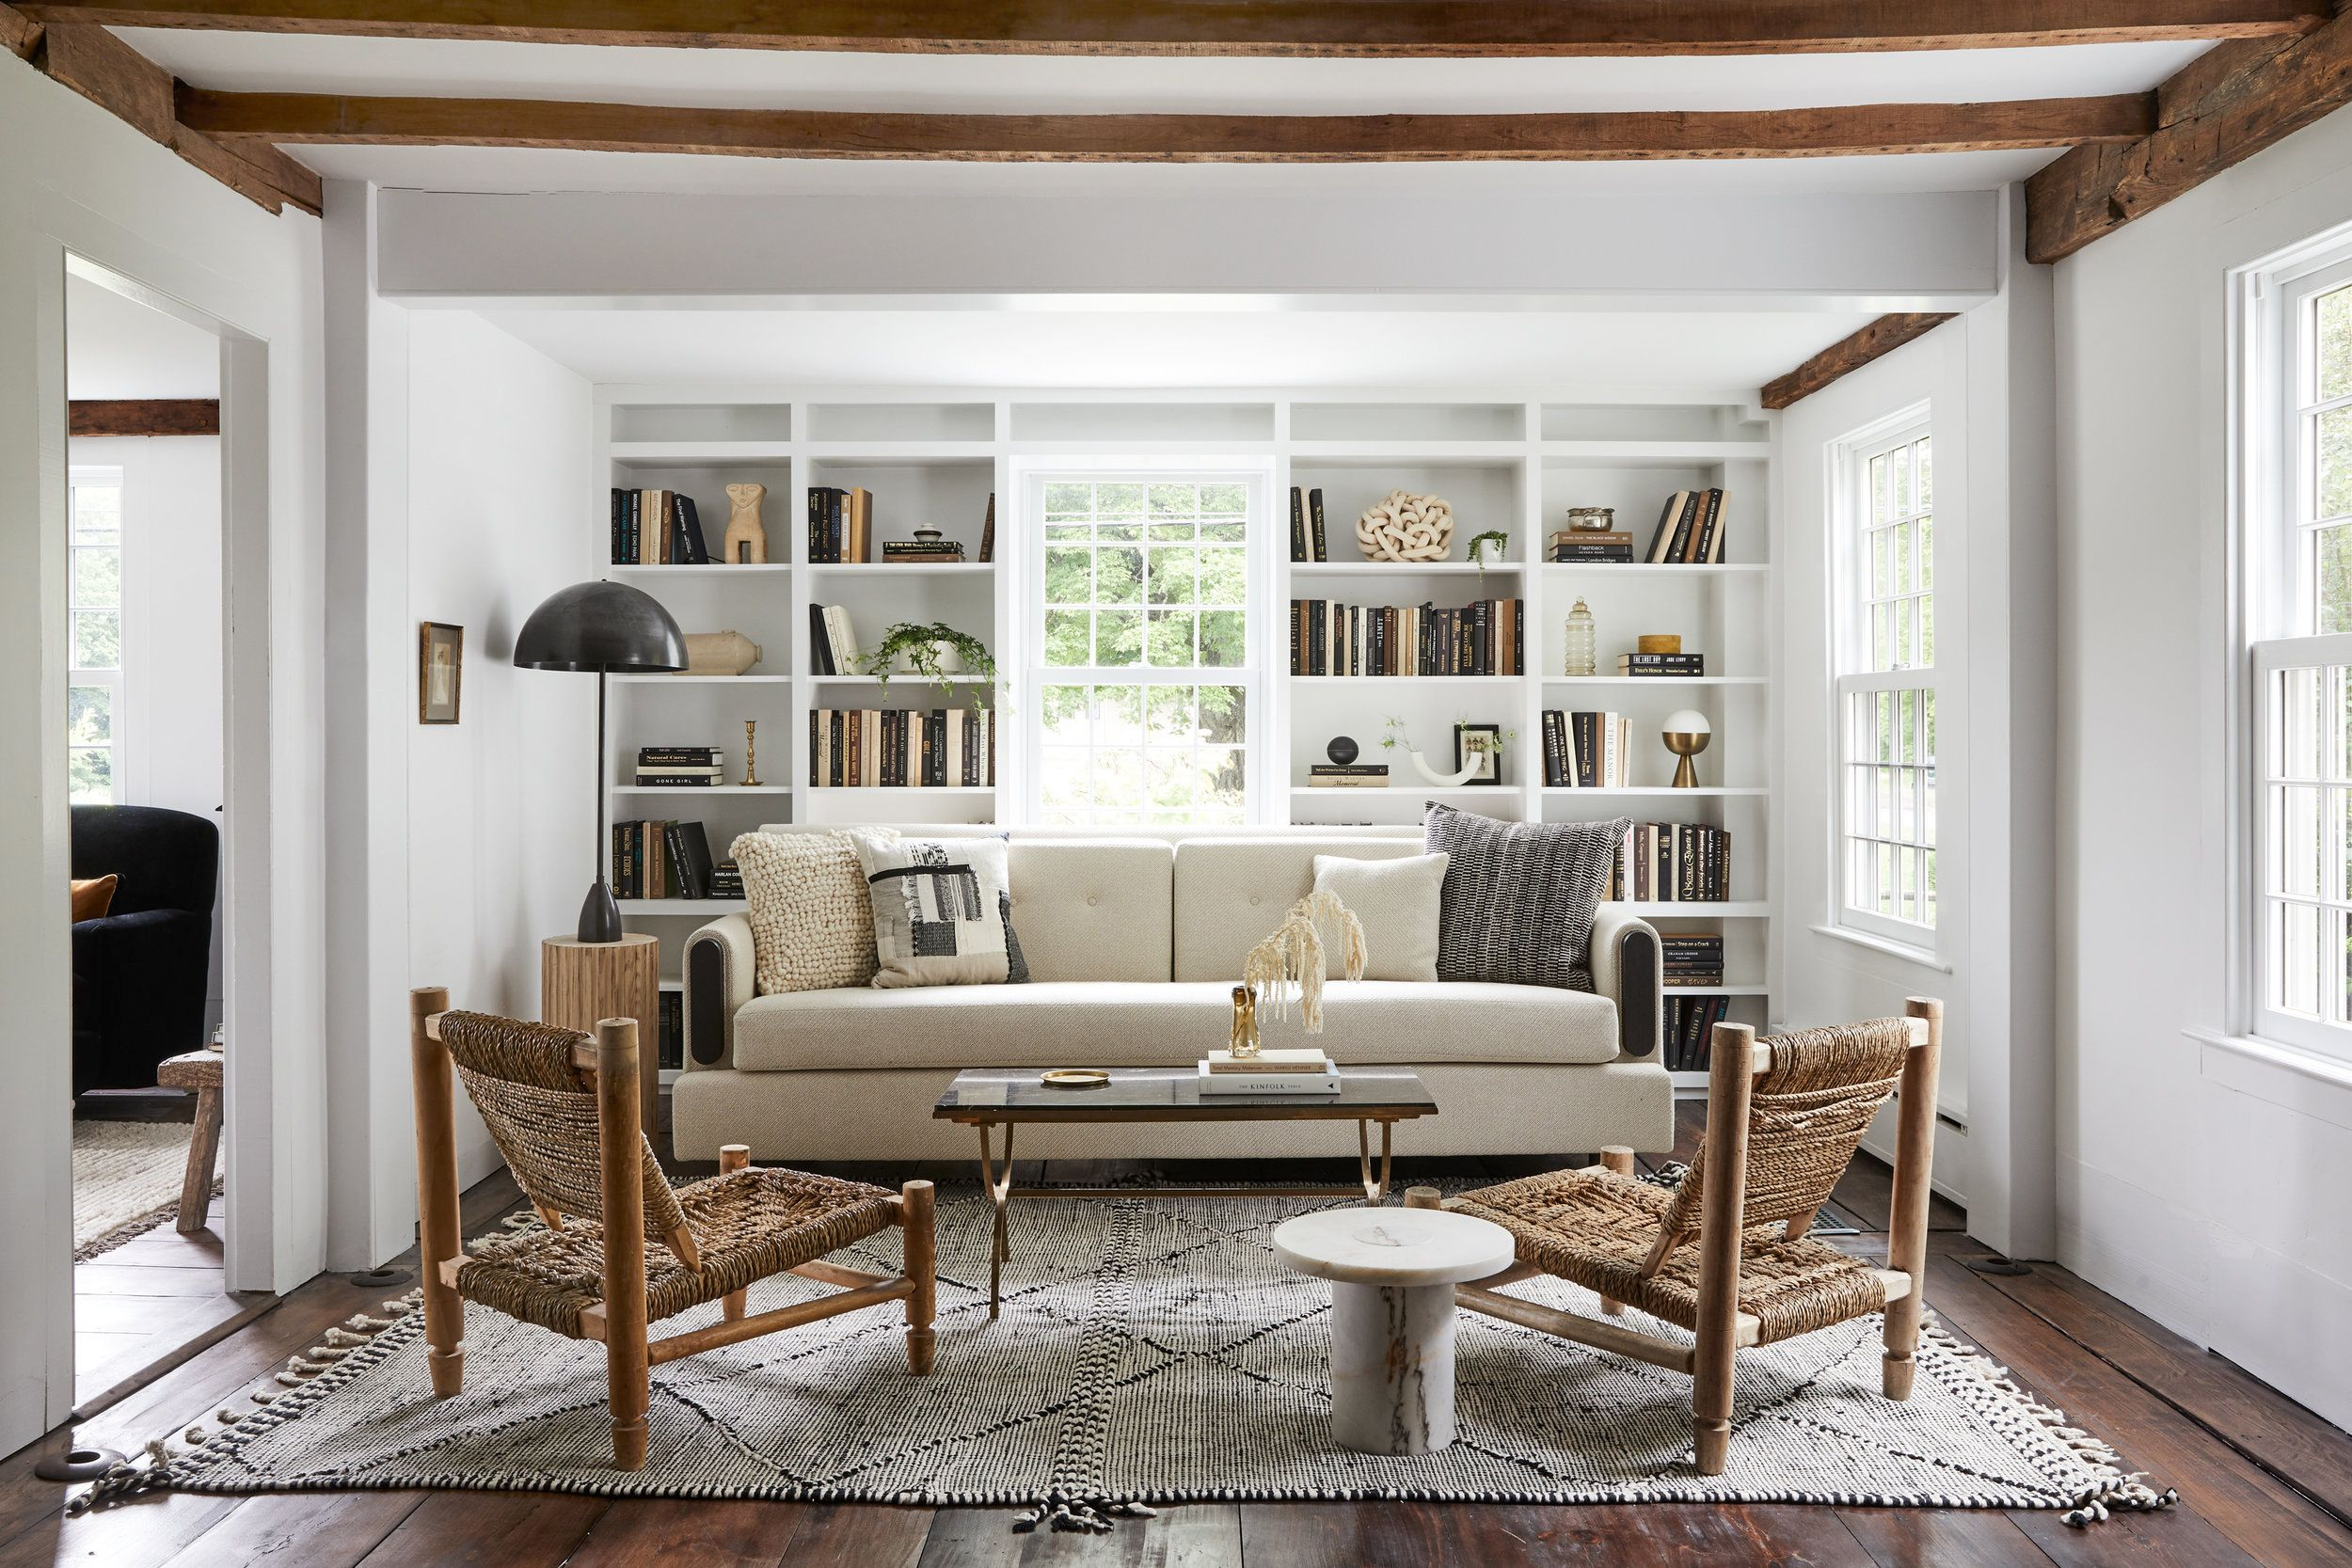 library-design-ideas-bruey-cottage-dining-seating-area-011-1572535597